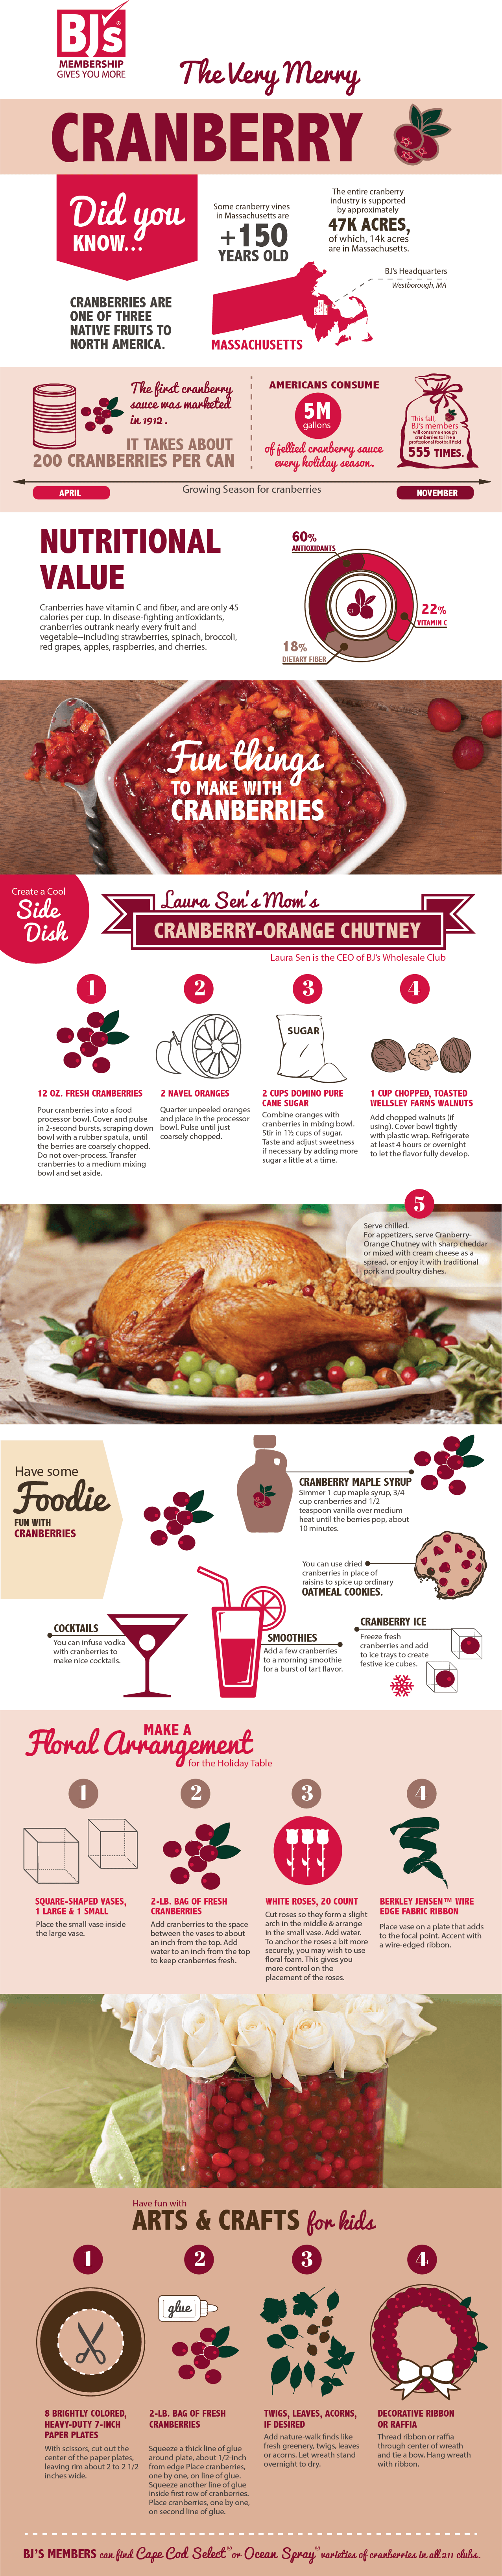 BJ's Cranberry Infographic Final